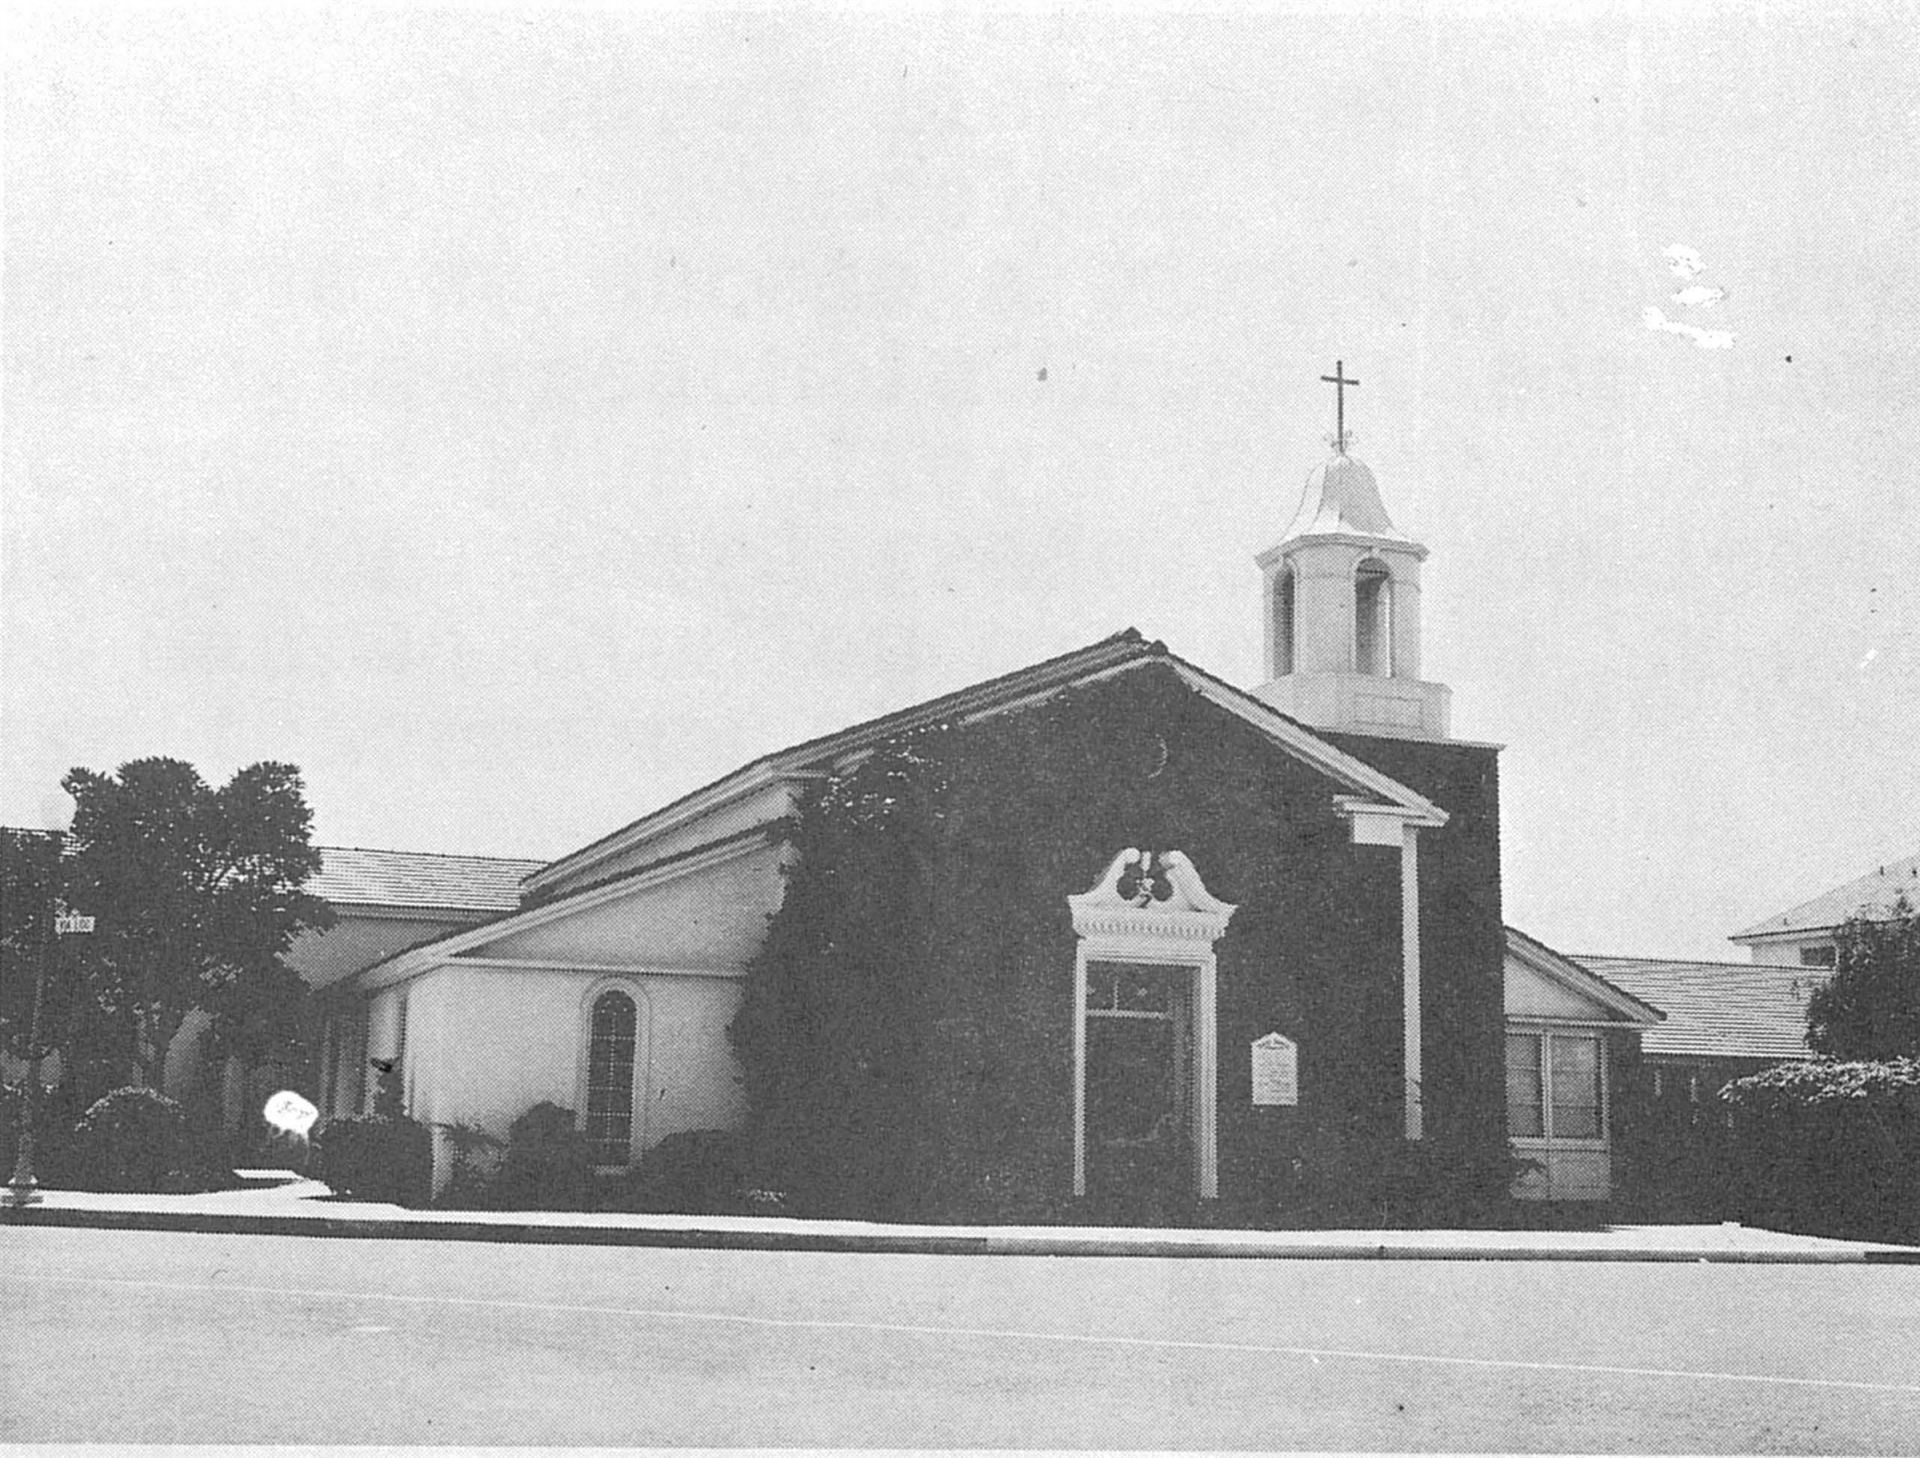 The original St. James Parish in the 1950